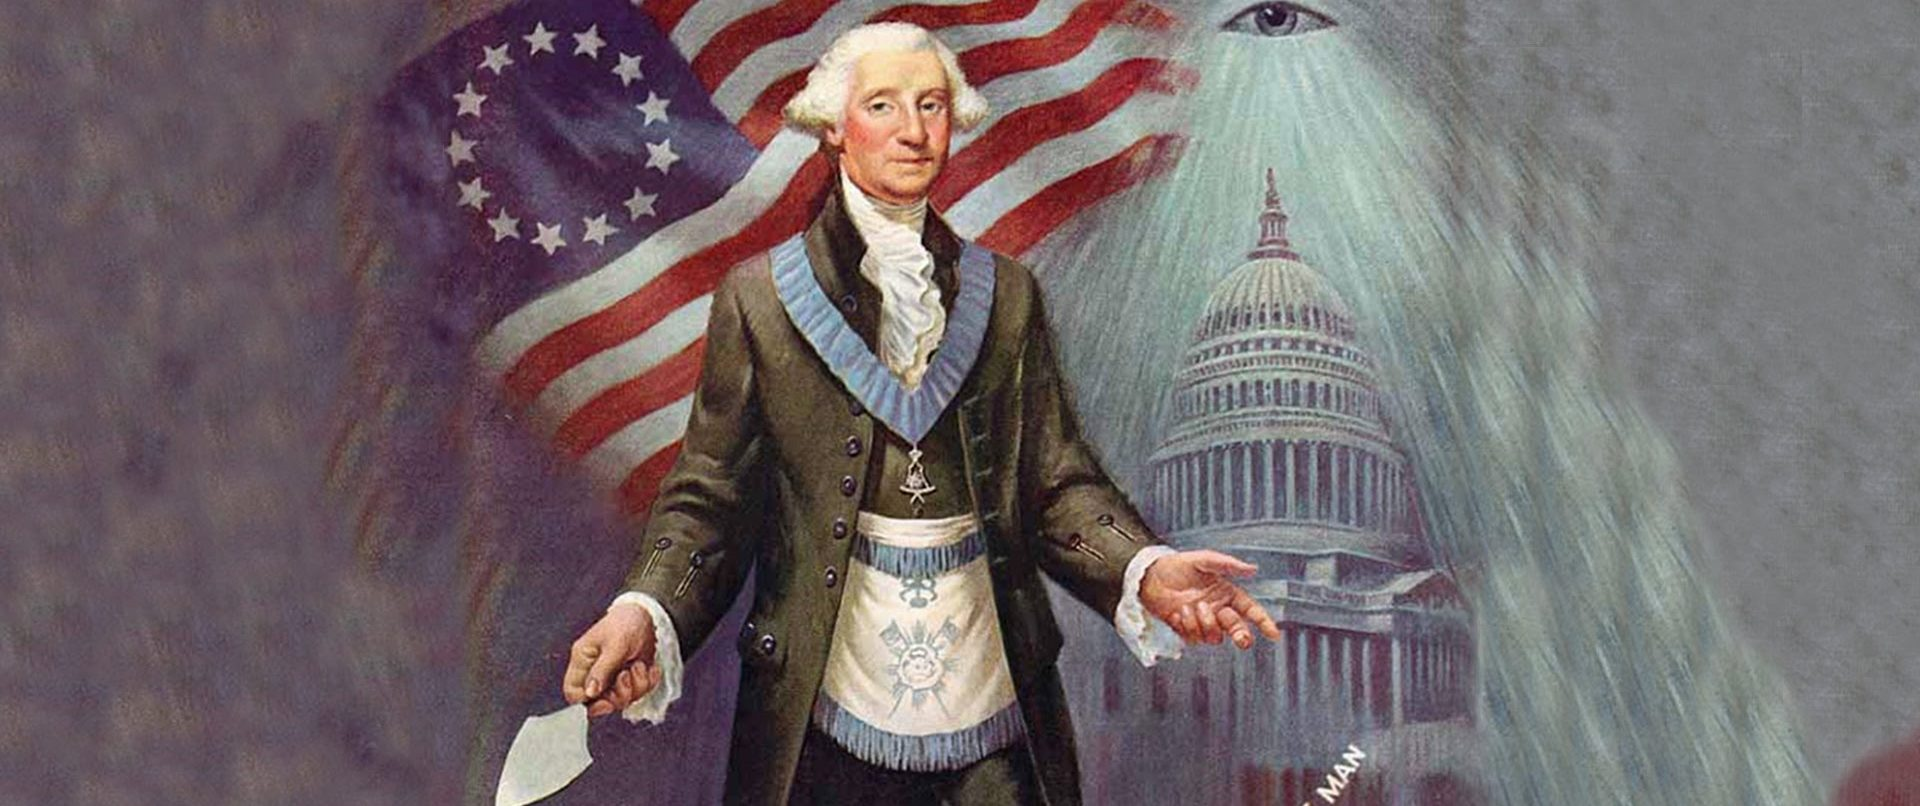 Uitleg Schootsvel George Washington